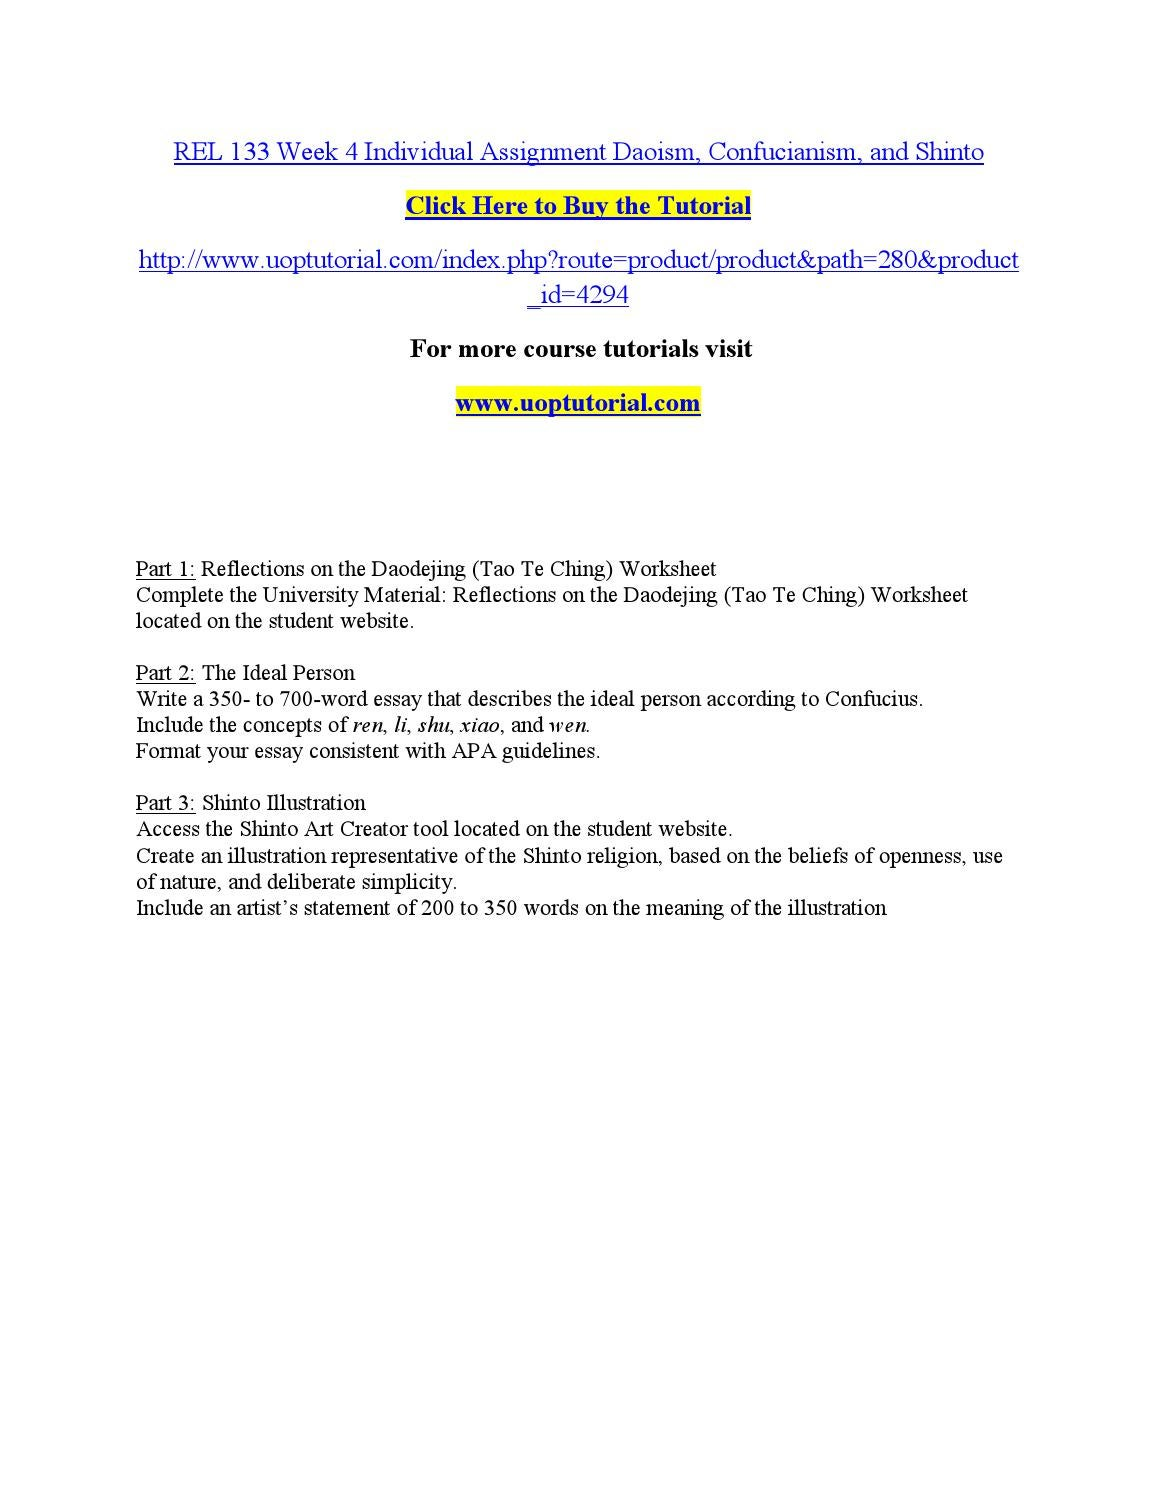 rel 133 week 3 buddhism worksheet Buddhism worksheet rel/133 version 3 1 university of phoenix material buddhism worksheet write a 1- to 2-paragraph response for each of the  week 3 buddhism essay.